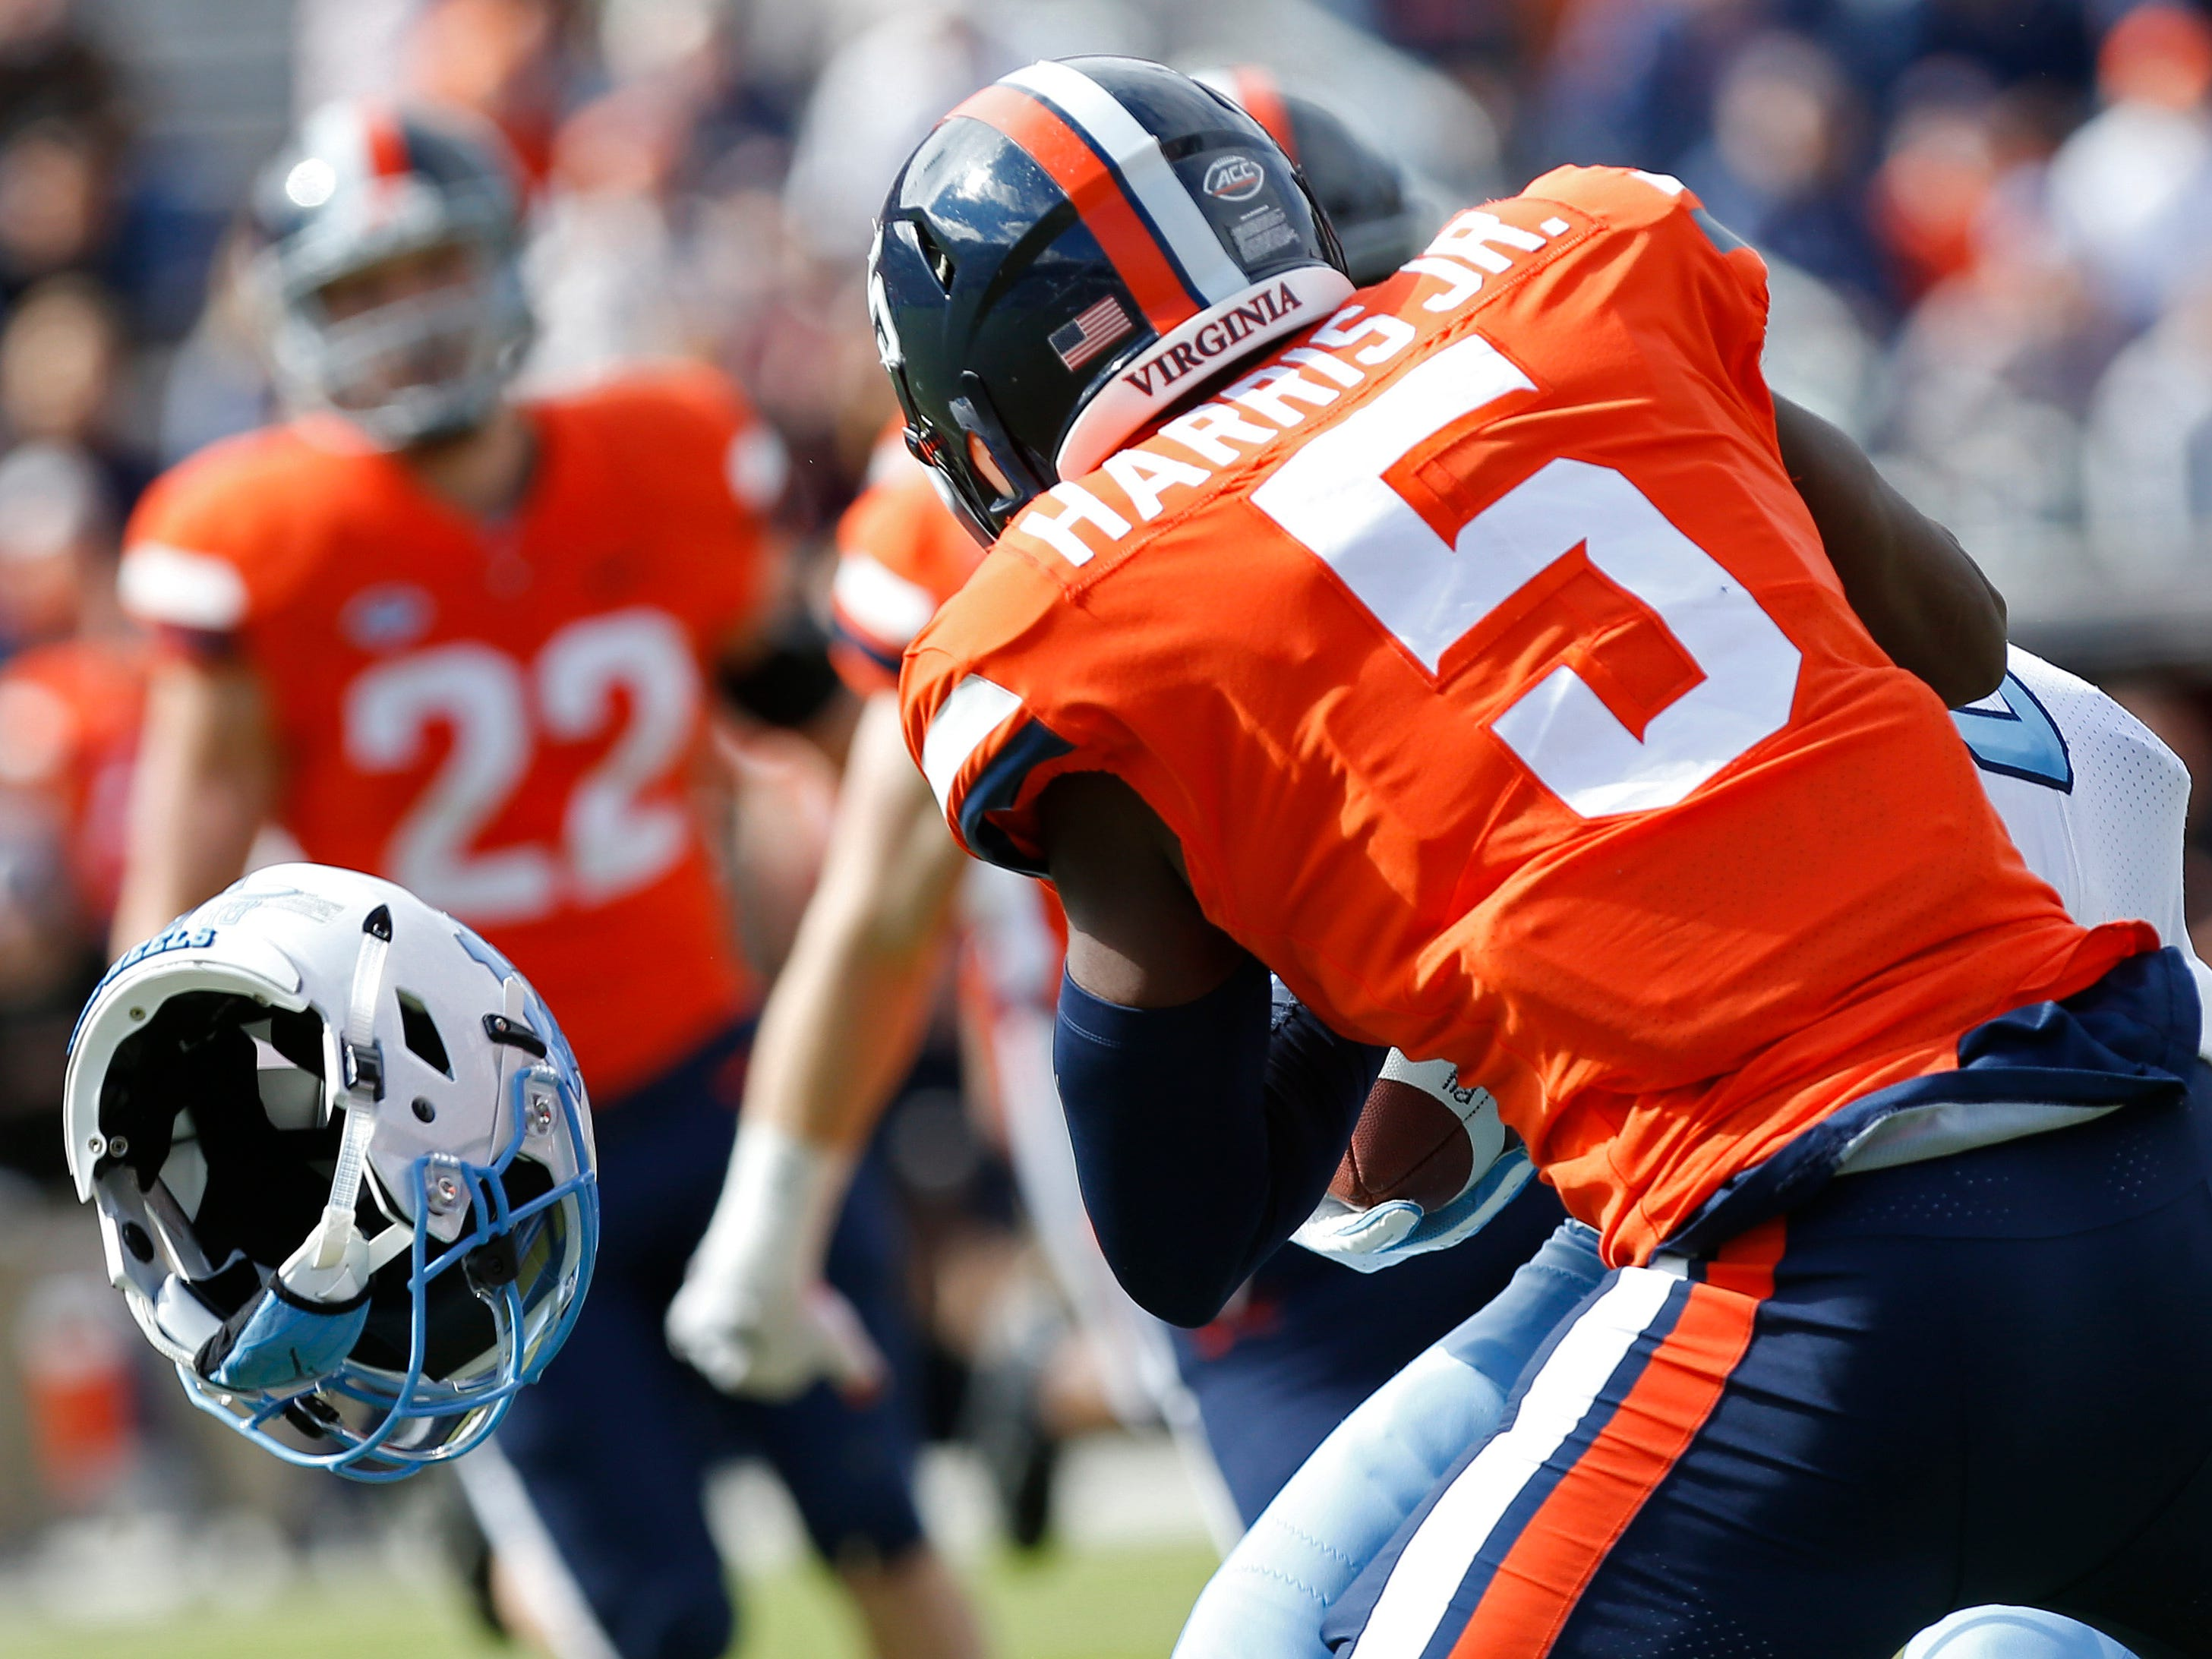 Virginia Cavaliers cornerback Tim Harris (5) tackles North Carolina Tar Heels tight end Carl Tucker (86) as his helmet falls off in the first quarter at Scott Stadium.